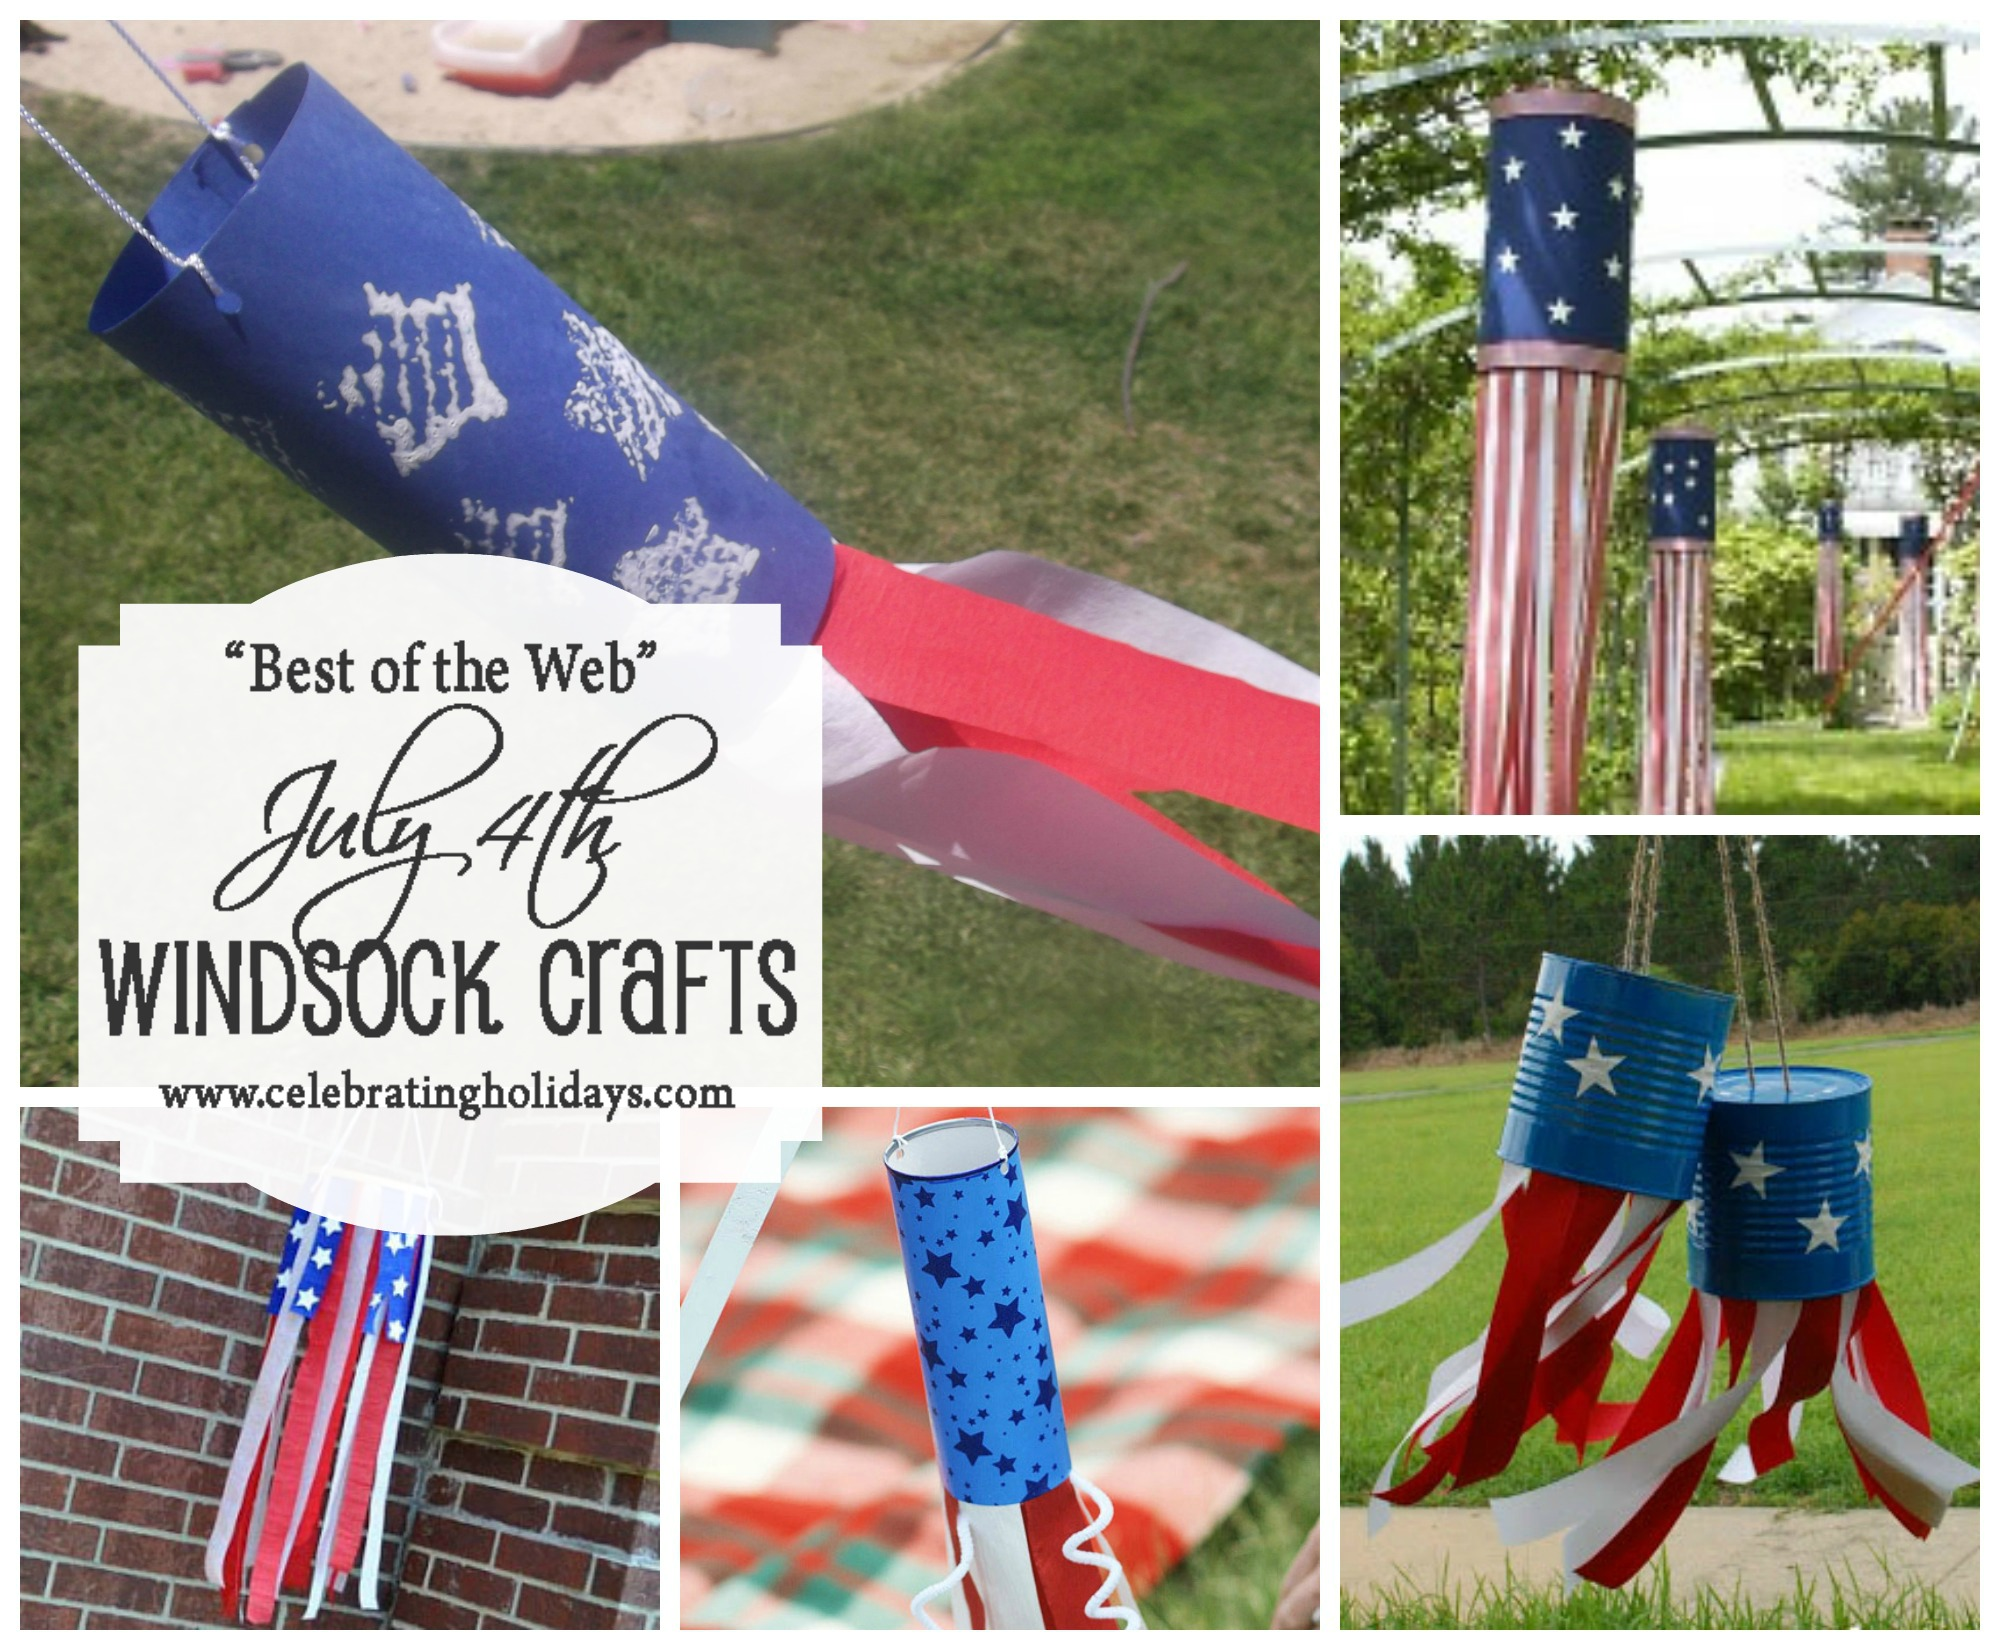 Windsock Crafts for July 4th